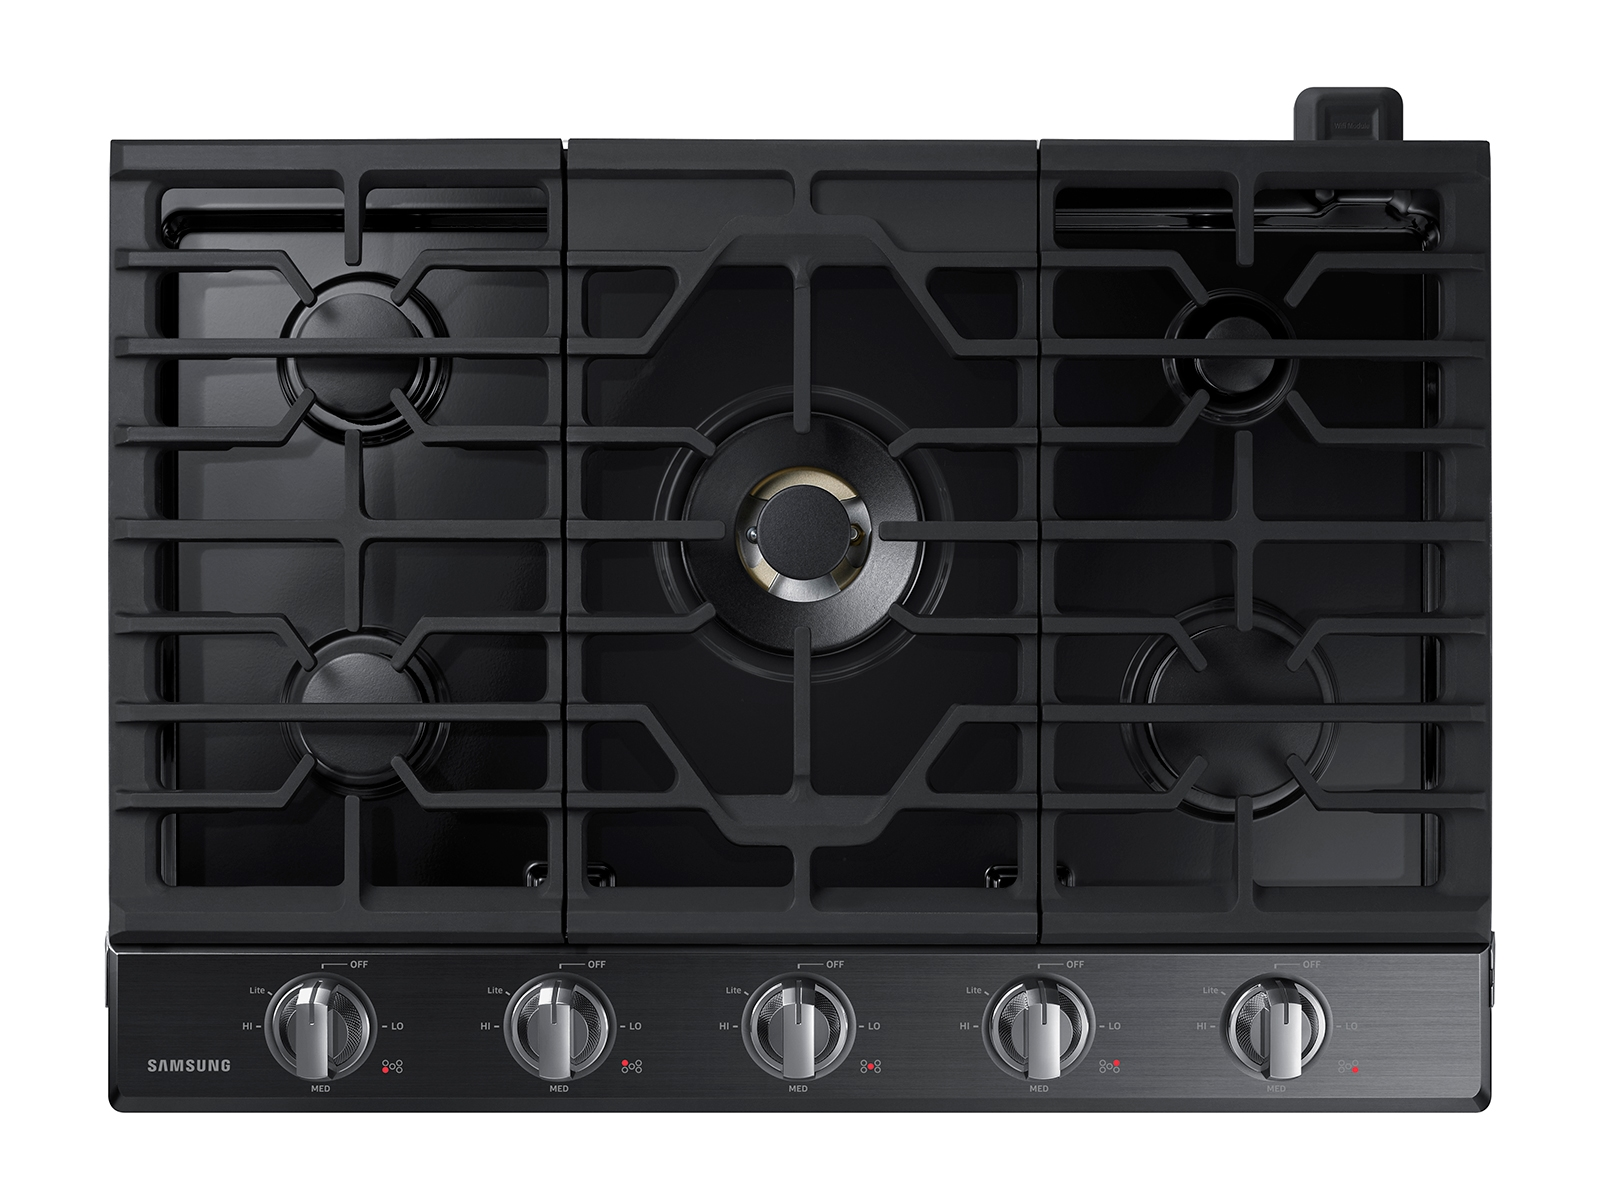 30 Gas Cooktop With 22k Btu True Dual Burner 2018 Cooktops And Hoods Na30n7755tg Aa Samsung Us